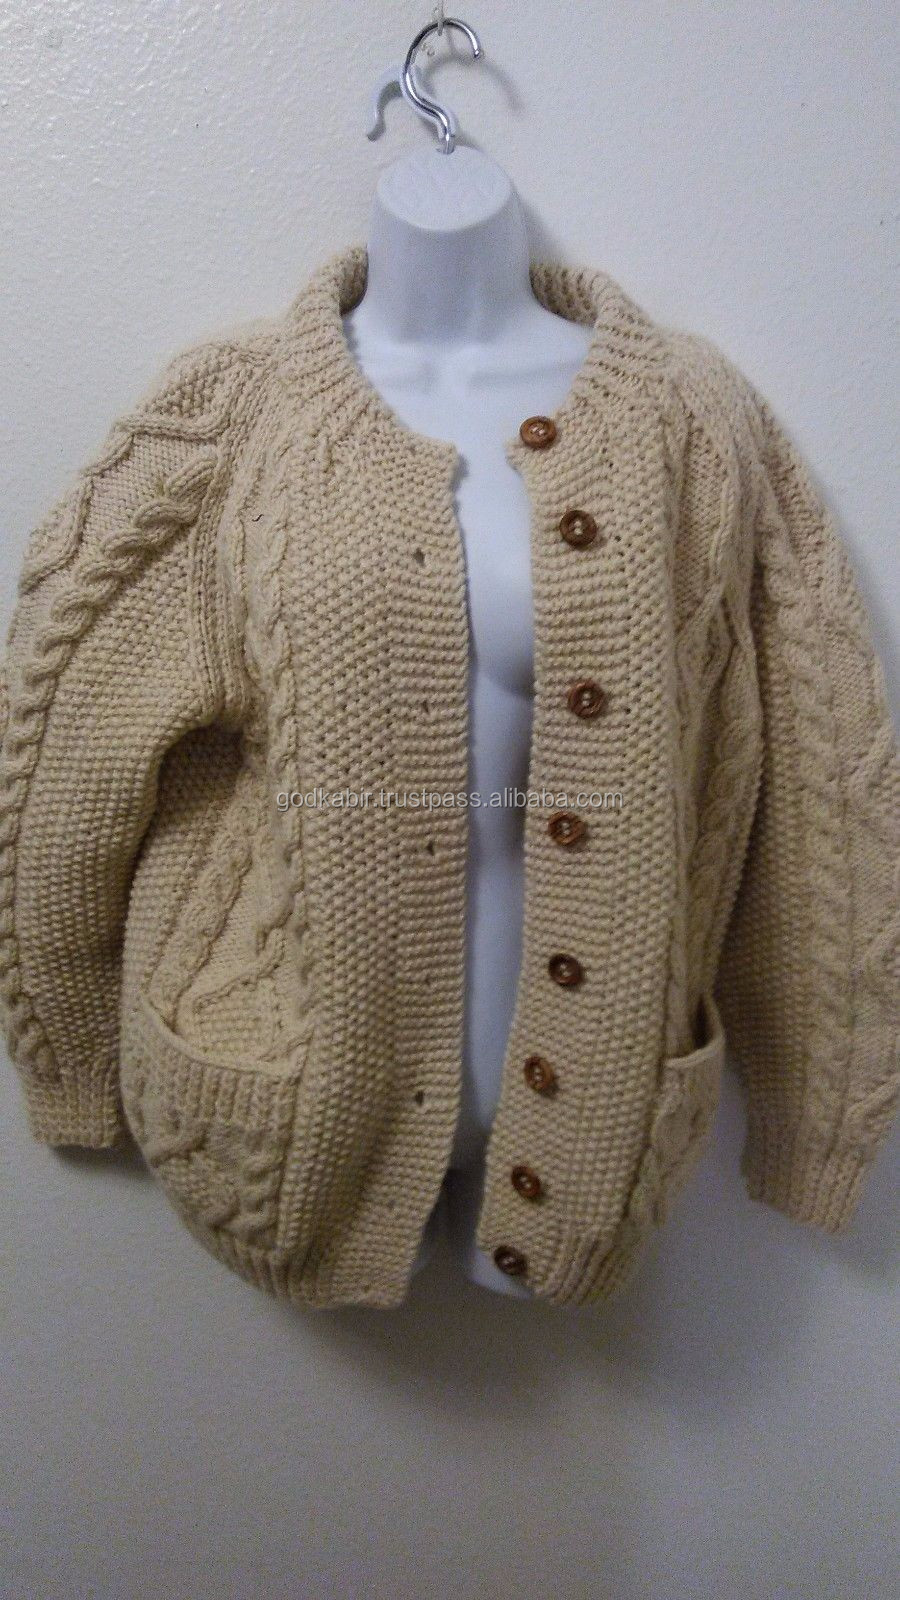 Best Pattern Design Cotton Sweater 100% Wool Thick Cable Knit Aran ...